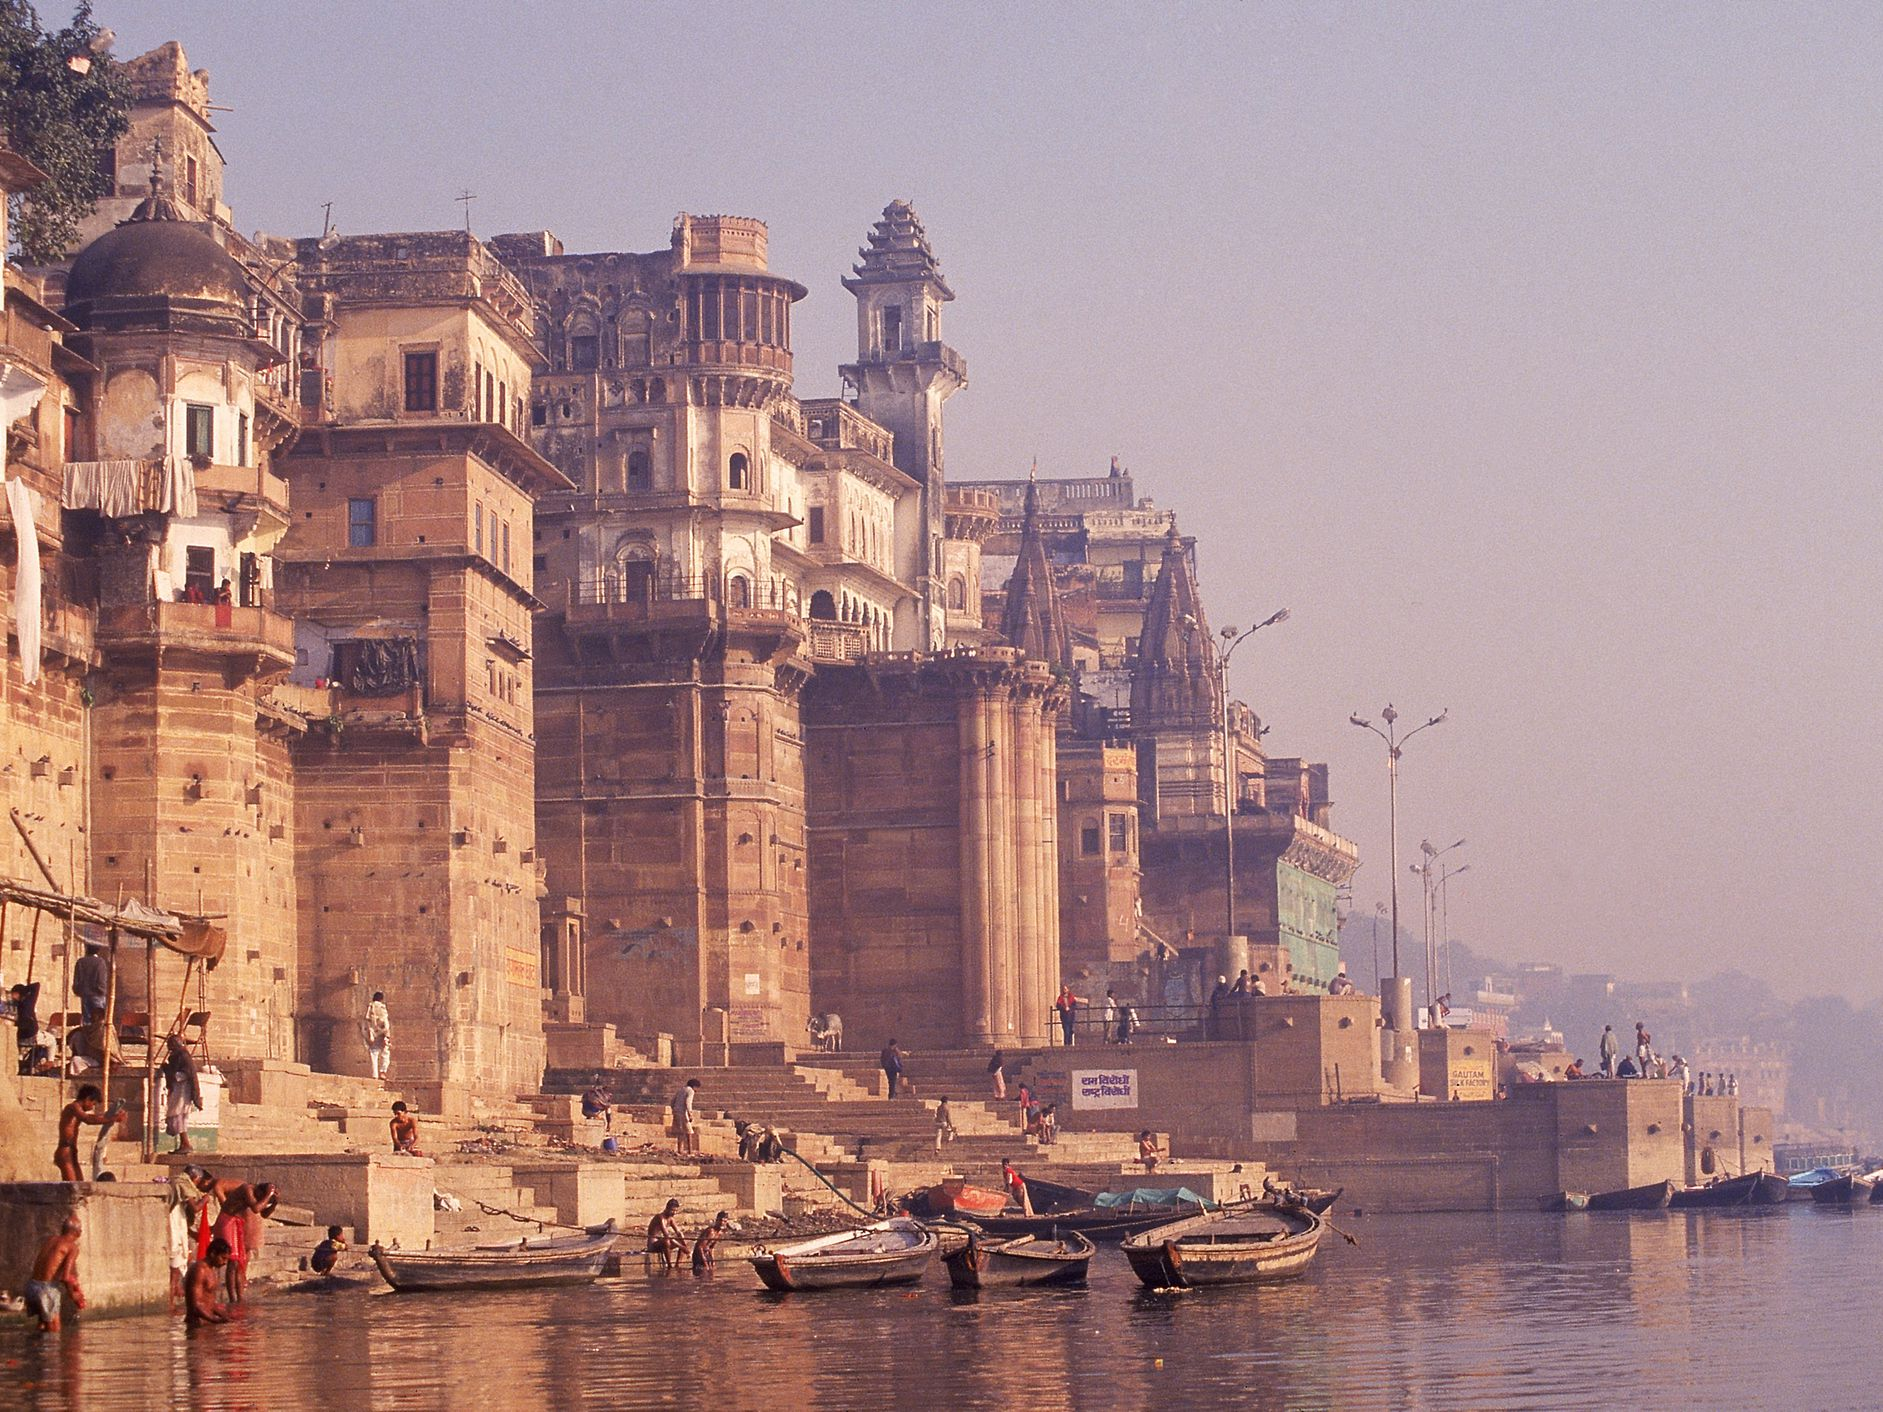 8 Important Ghats in Varanasi that You Must See